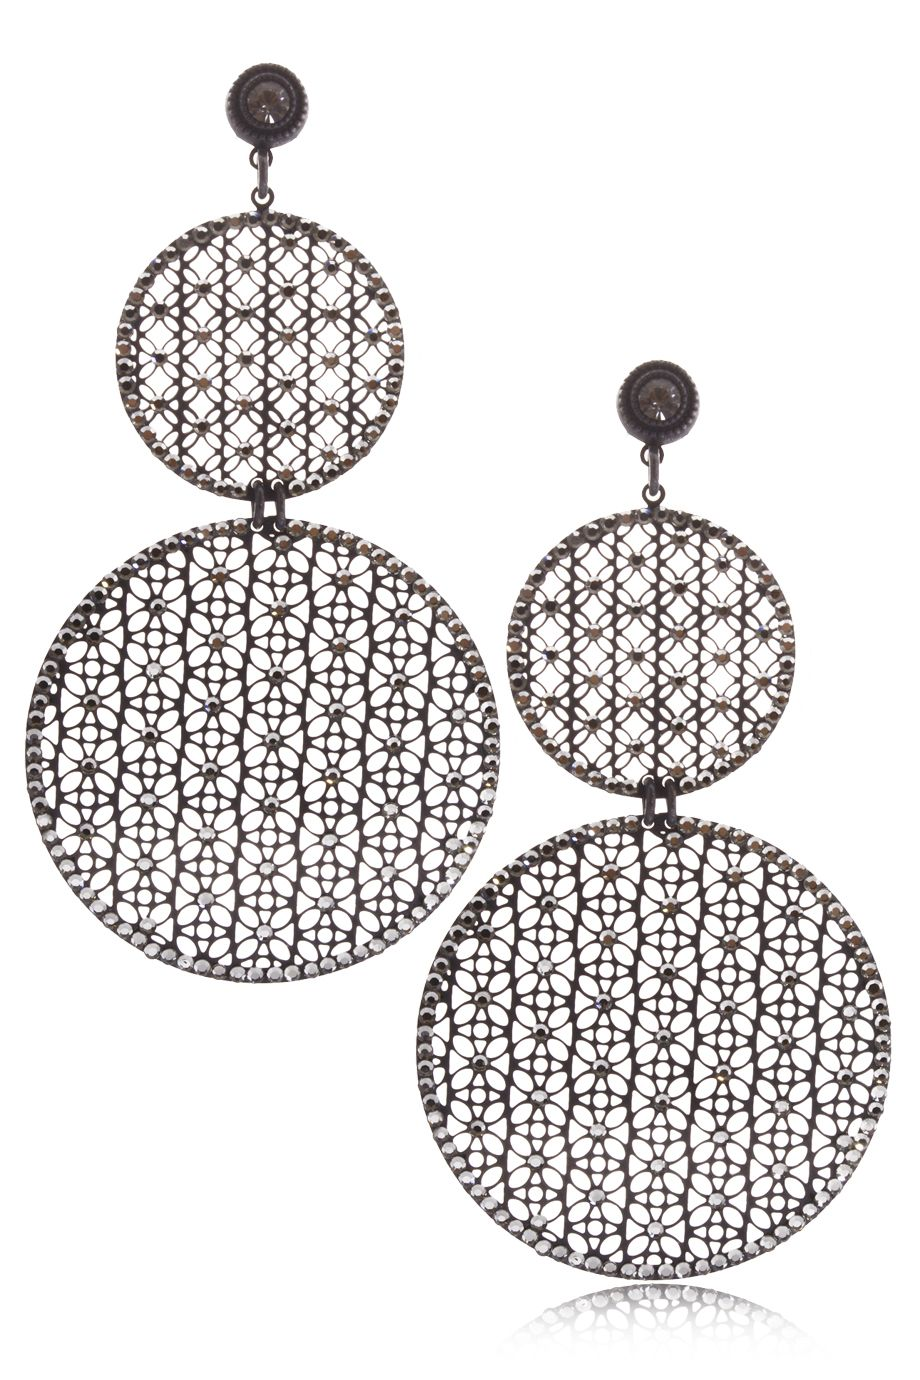 Body piercing earrings  LK DESIGNS Earring Small Circle On Big  ACCESSORIES  JEWELRY